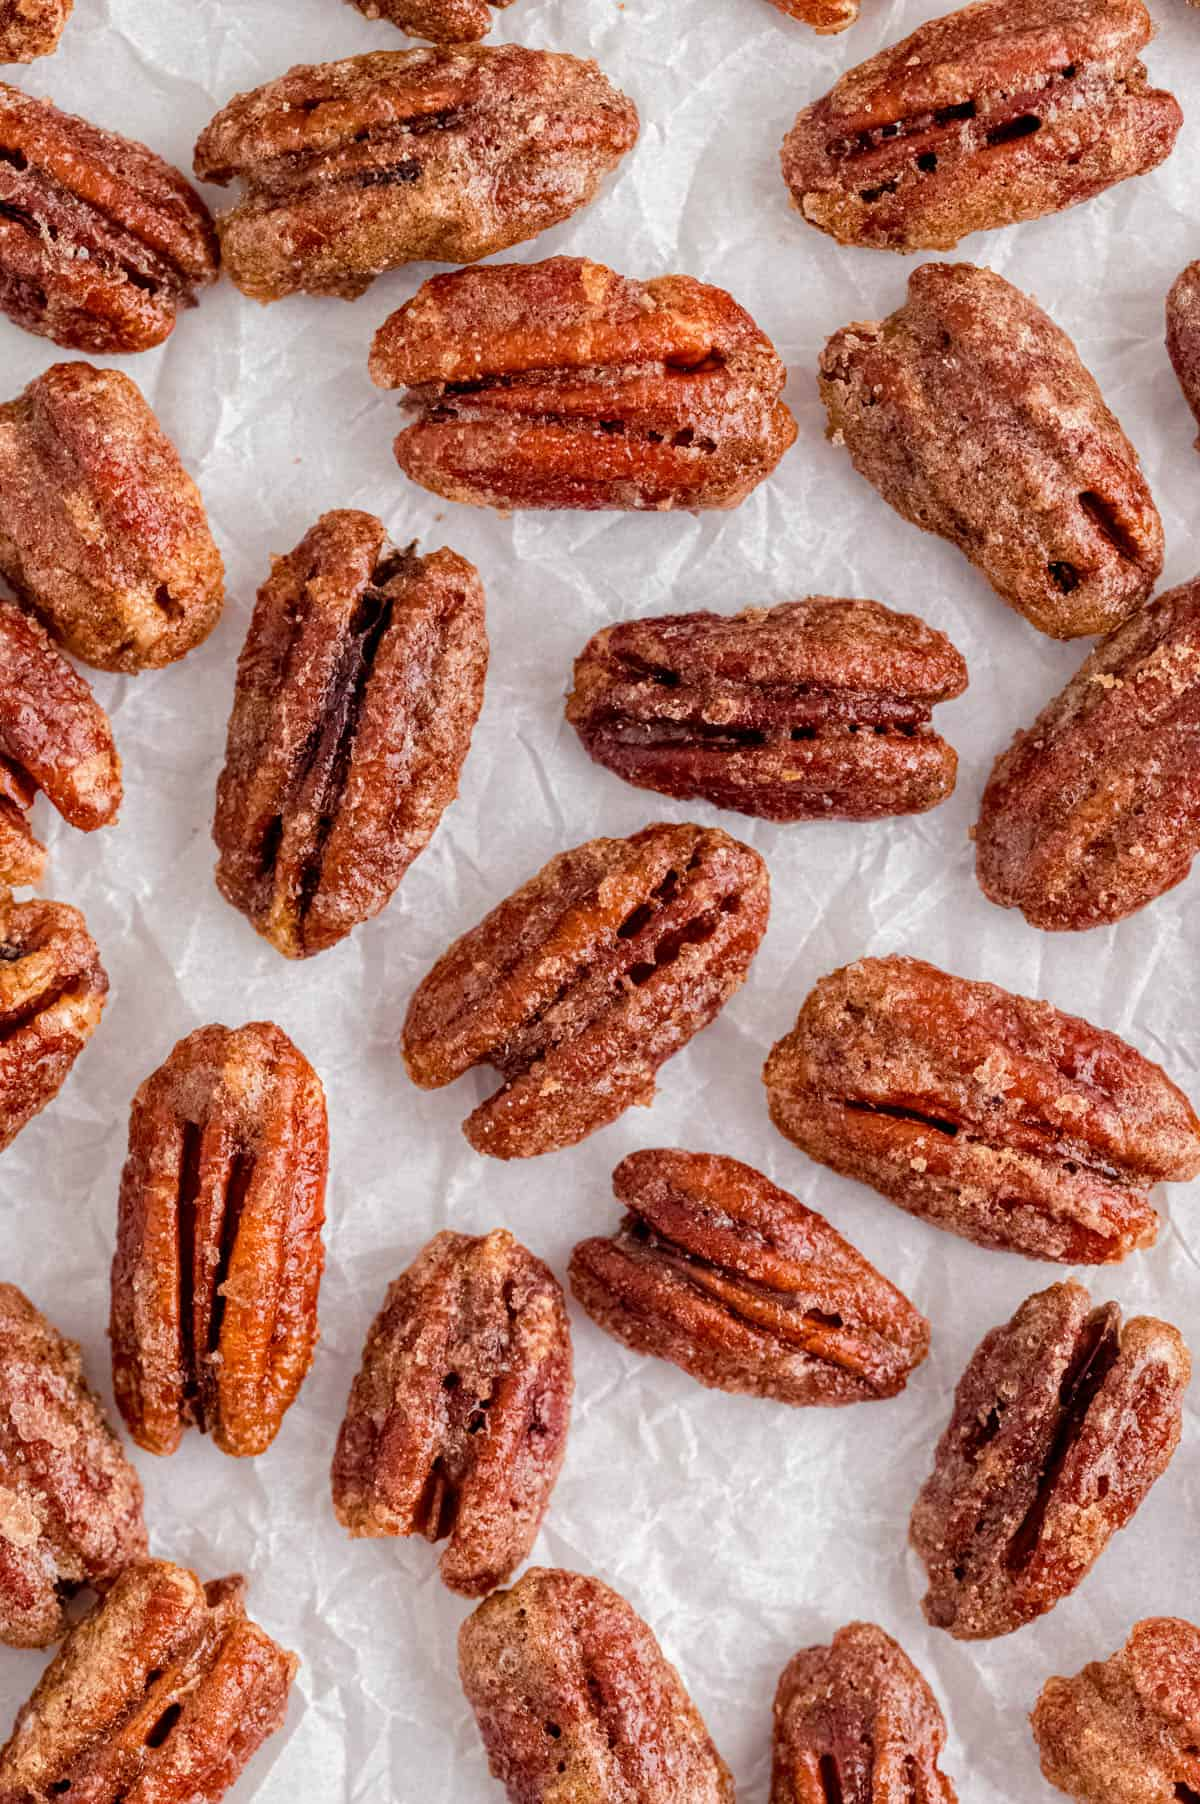 baked candied pecans on a piece of white parchment paper